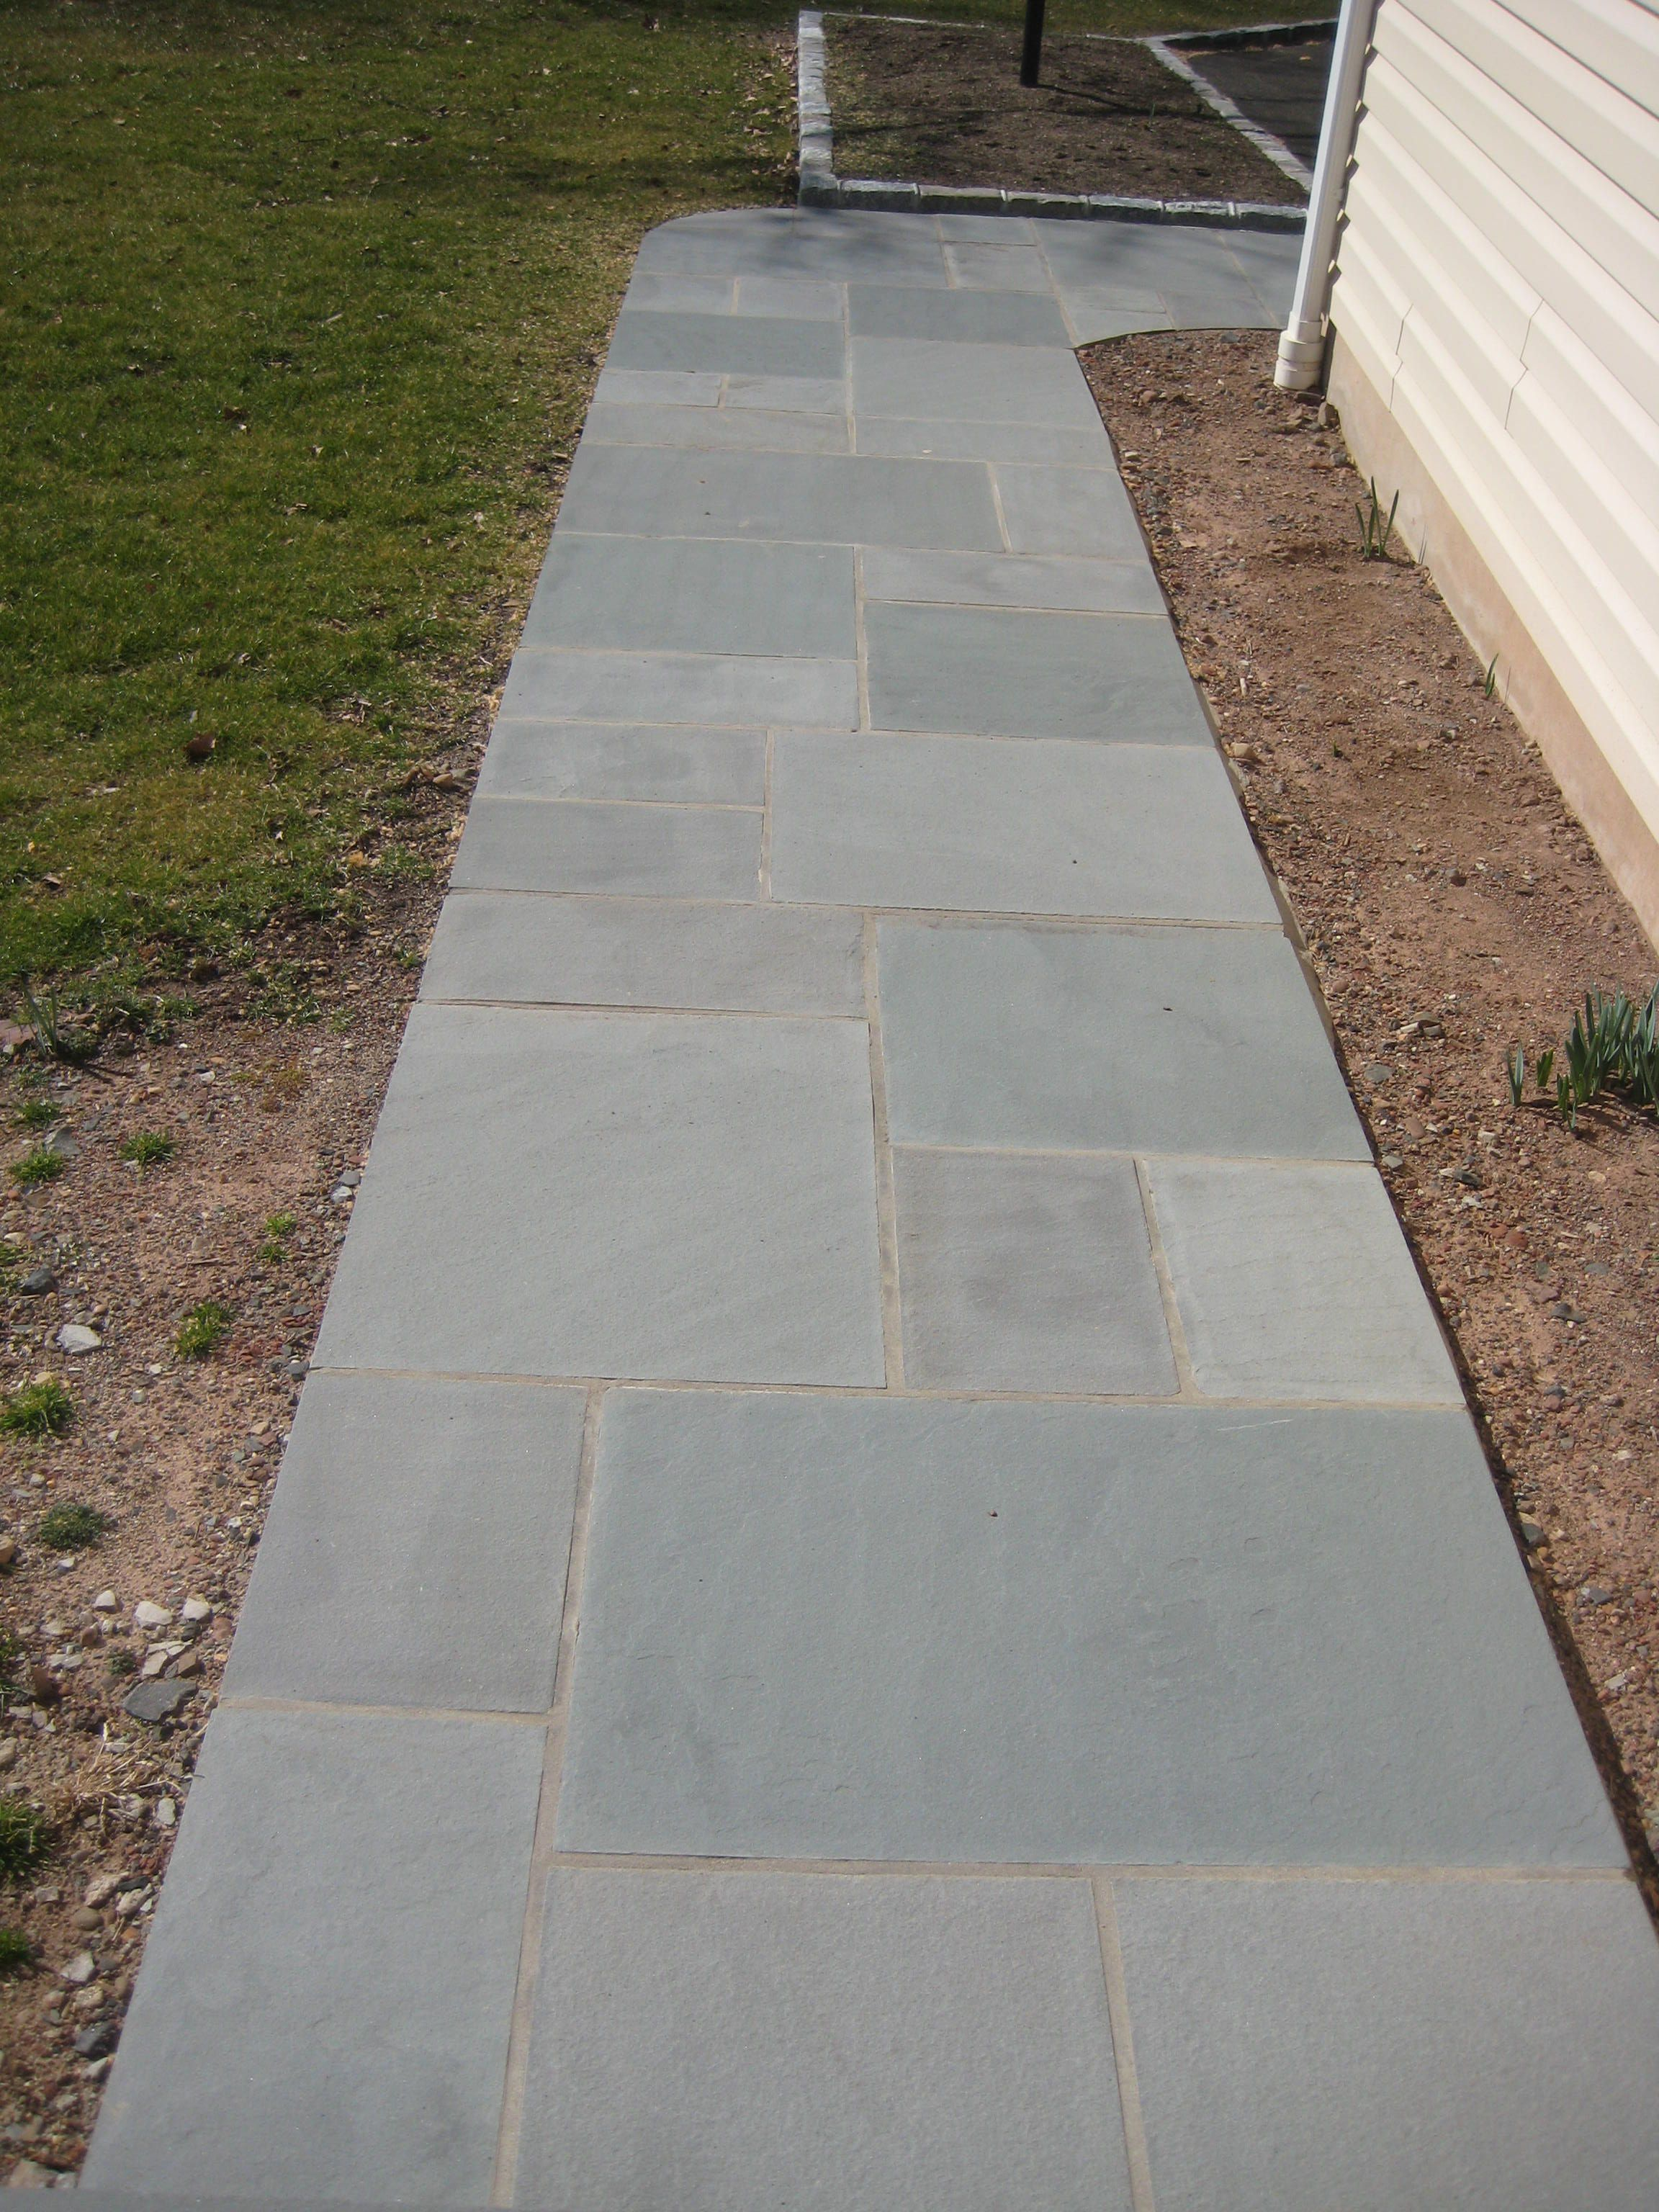 Exciting bluestone pavers for best natural stone flooring for Bluestone flooring